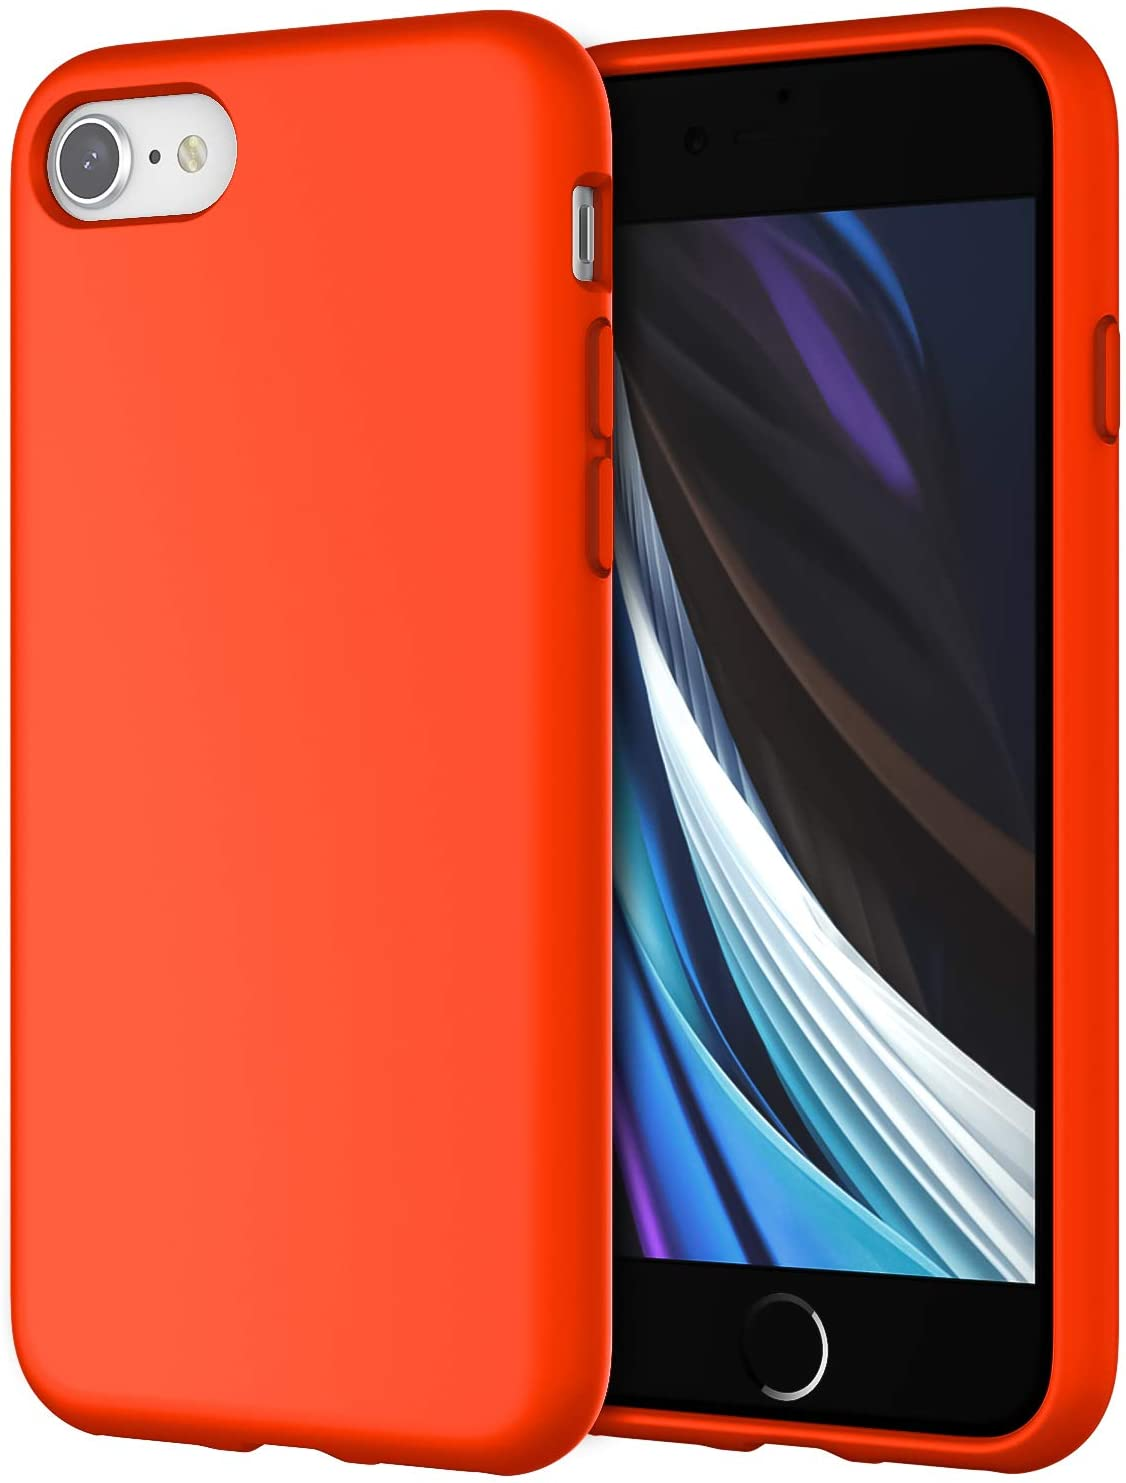 JETech Silicone Case for iPhone SE 2020, iPhone 8 and iPhone 7, 4.7-Inch, Silky-Soft Touch Full-Body Protective Case, Shockproof Cover with Microfiber Lining, Spicy Orange